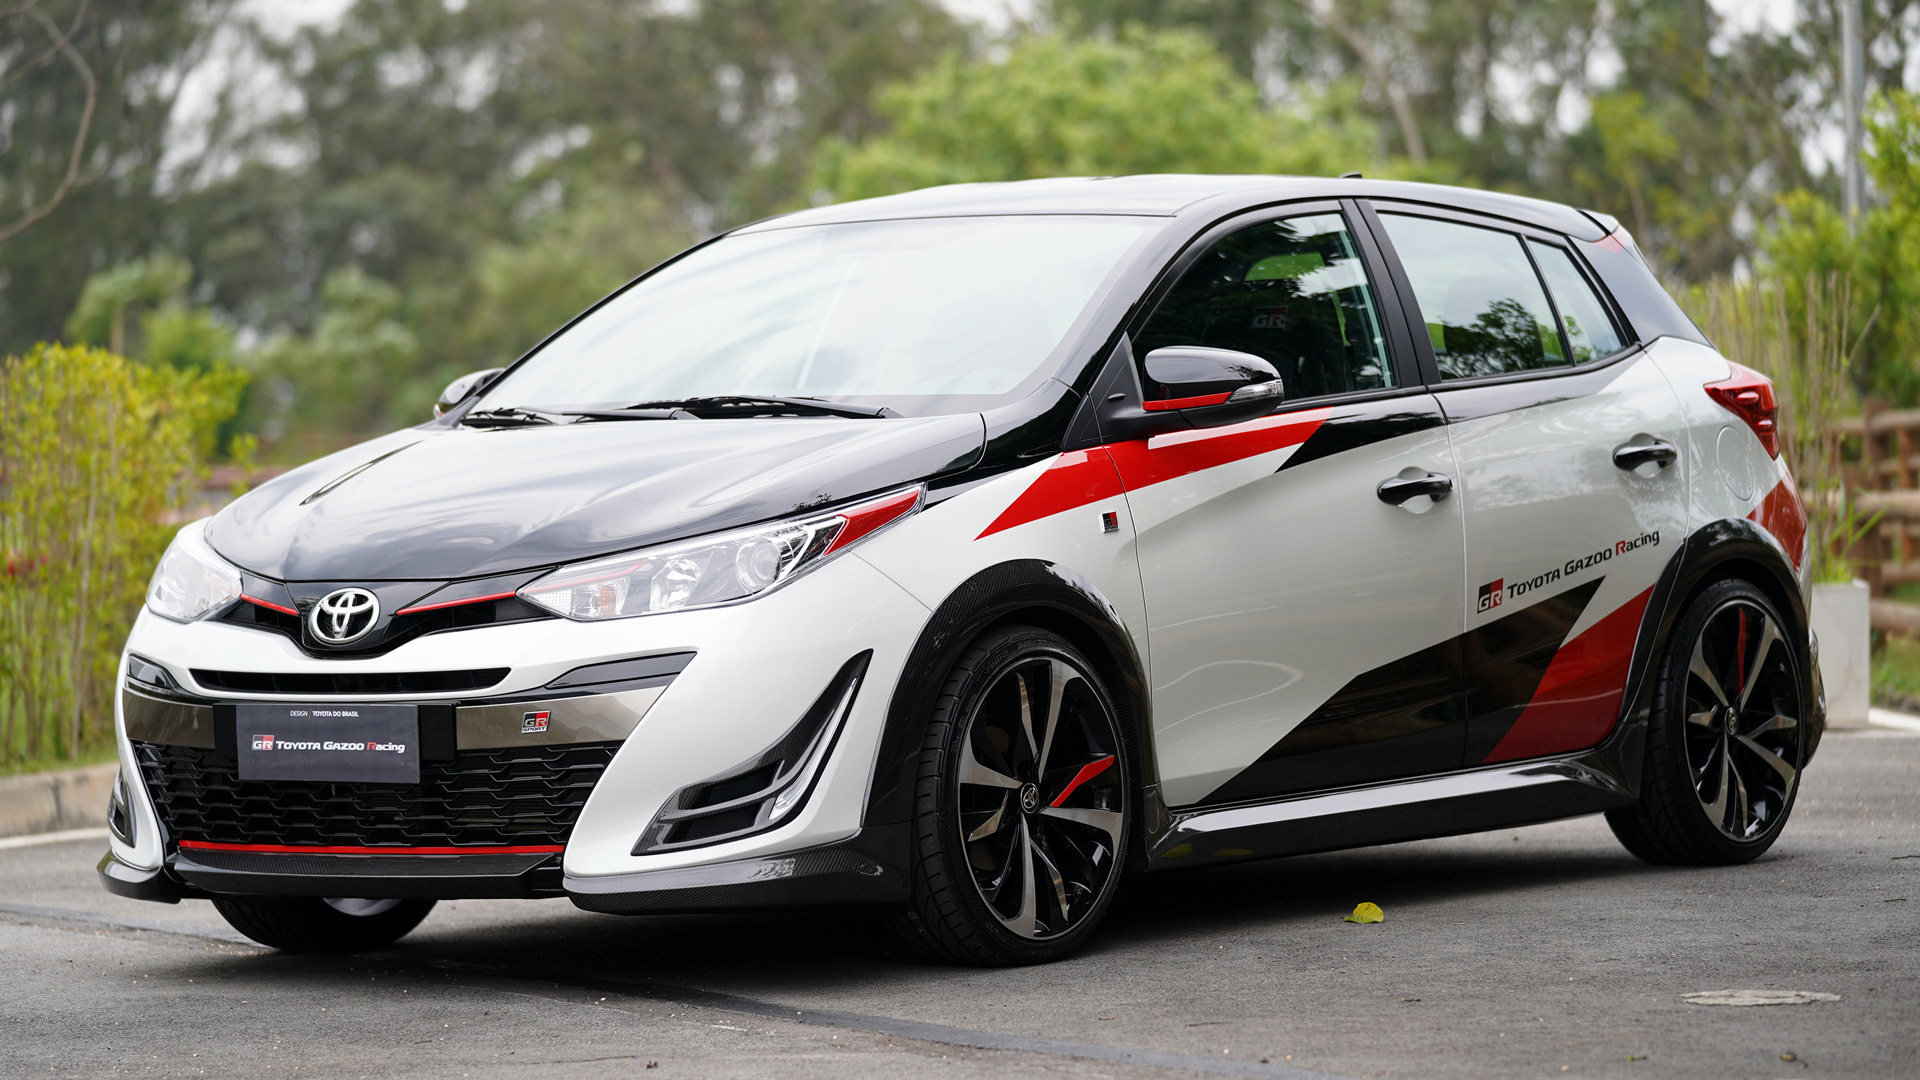 2018 Toyota Yaris GR Concept - Wallpapers and HD Images ...